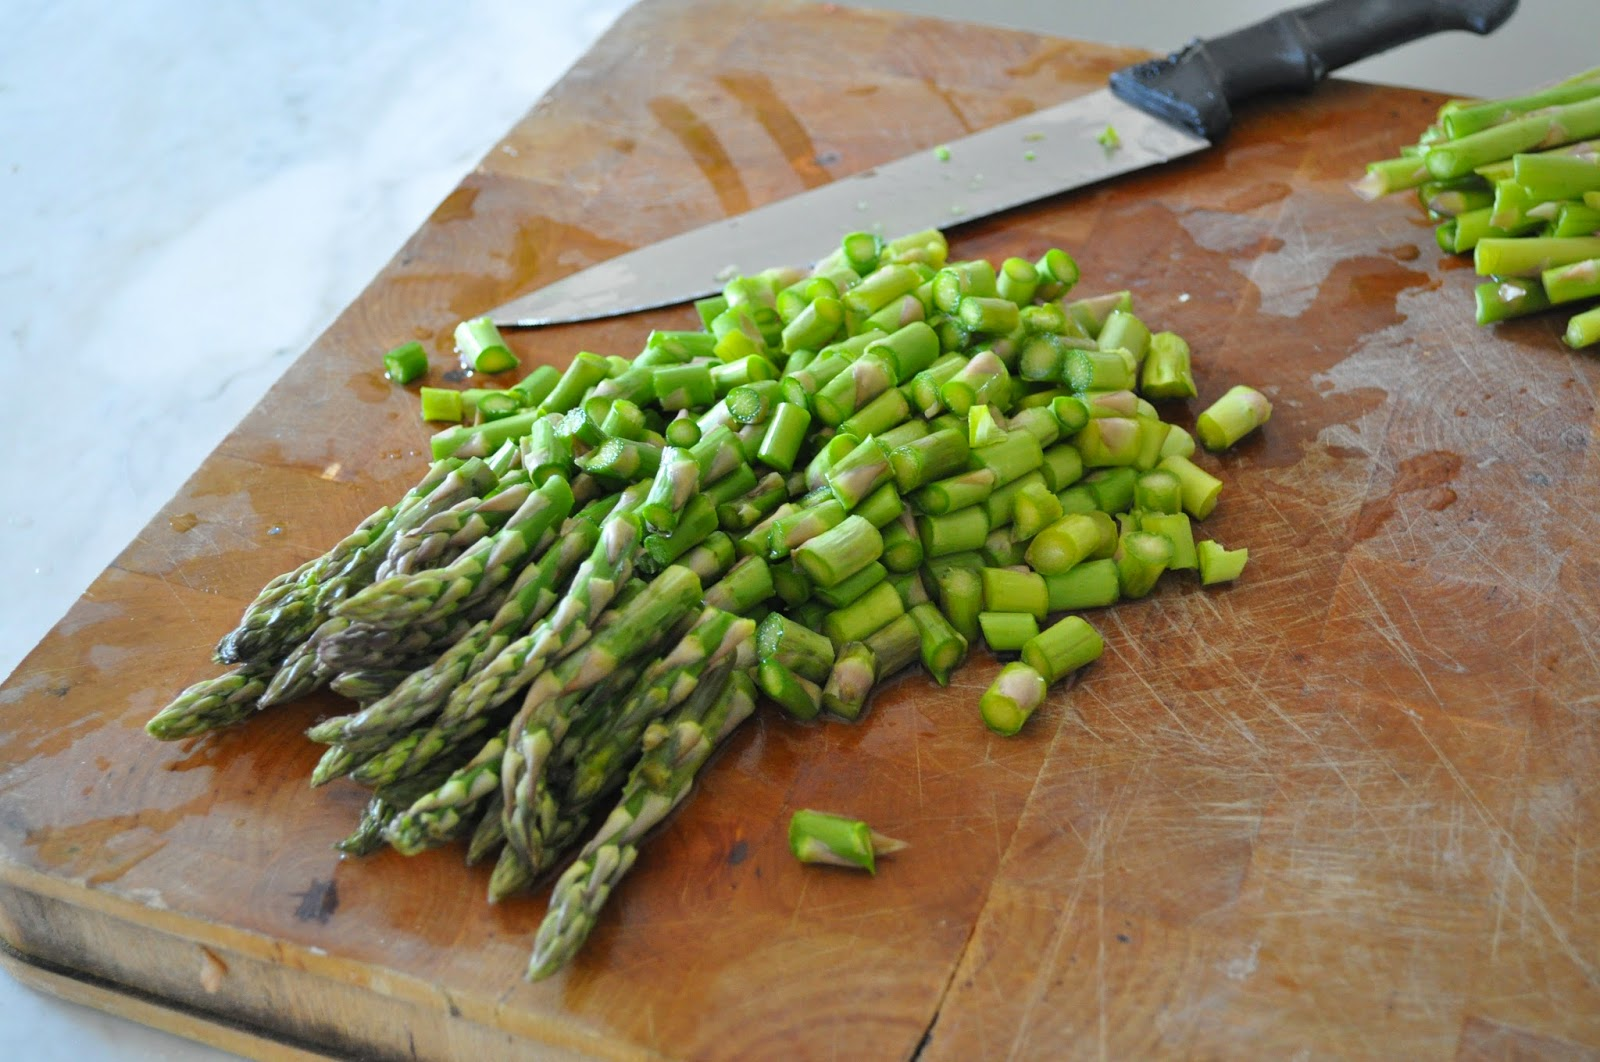 Wash The Asparagus And Cut In Pieces When The Water Boils Cook For The  Asparagus For About 8 Minutes, Depending On Thickness, Until Tender